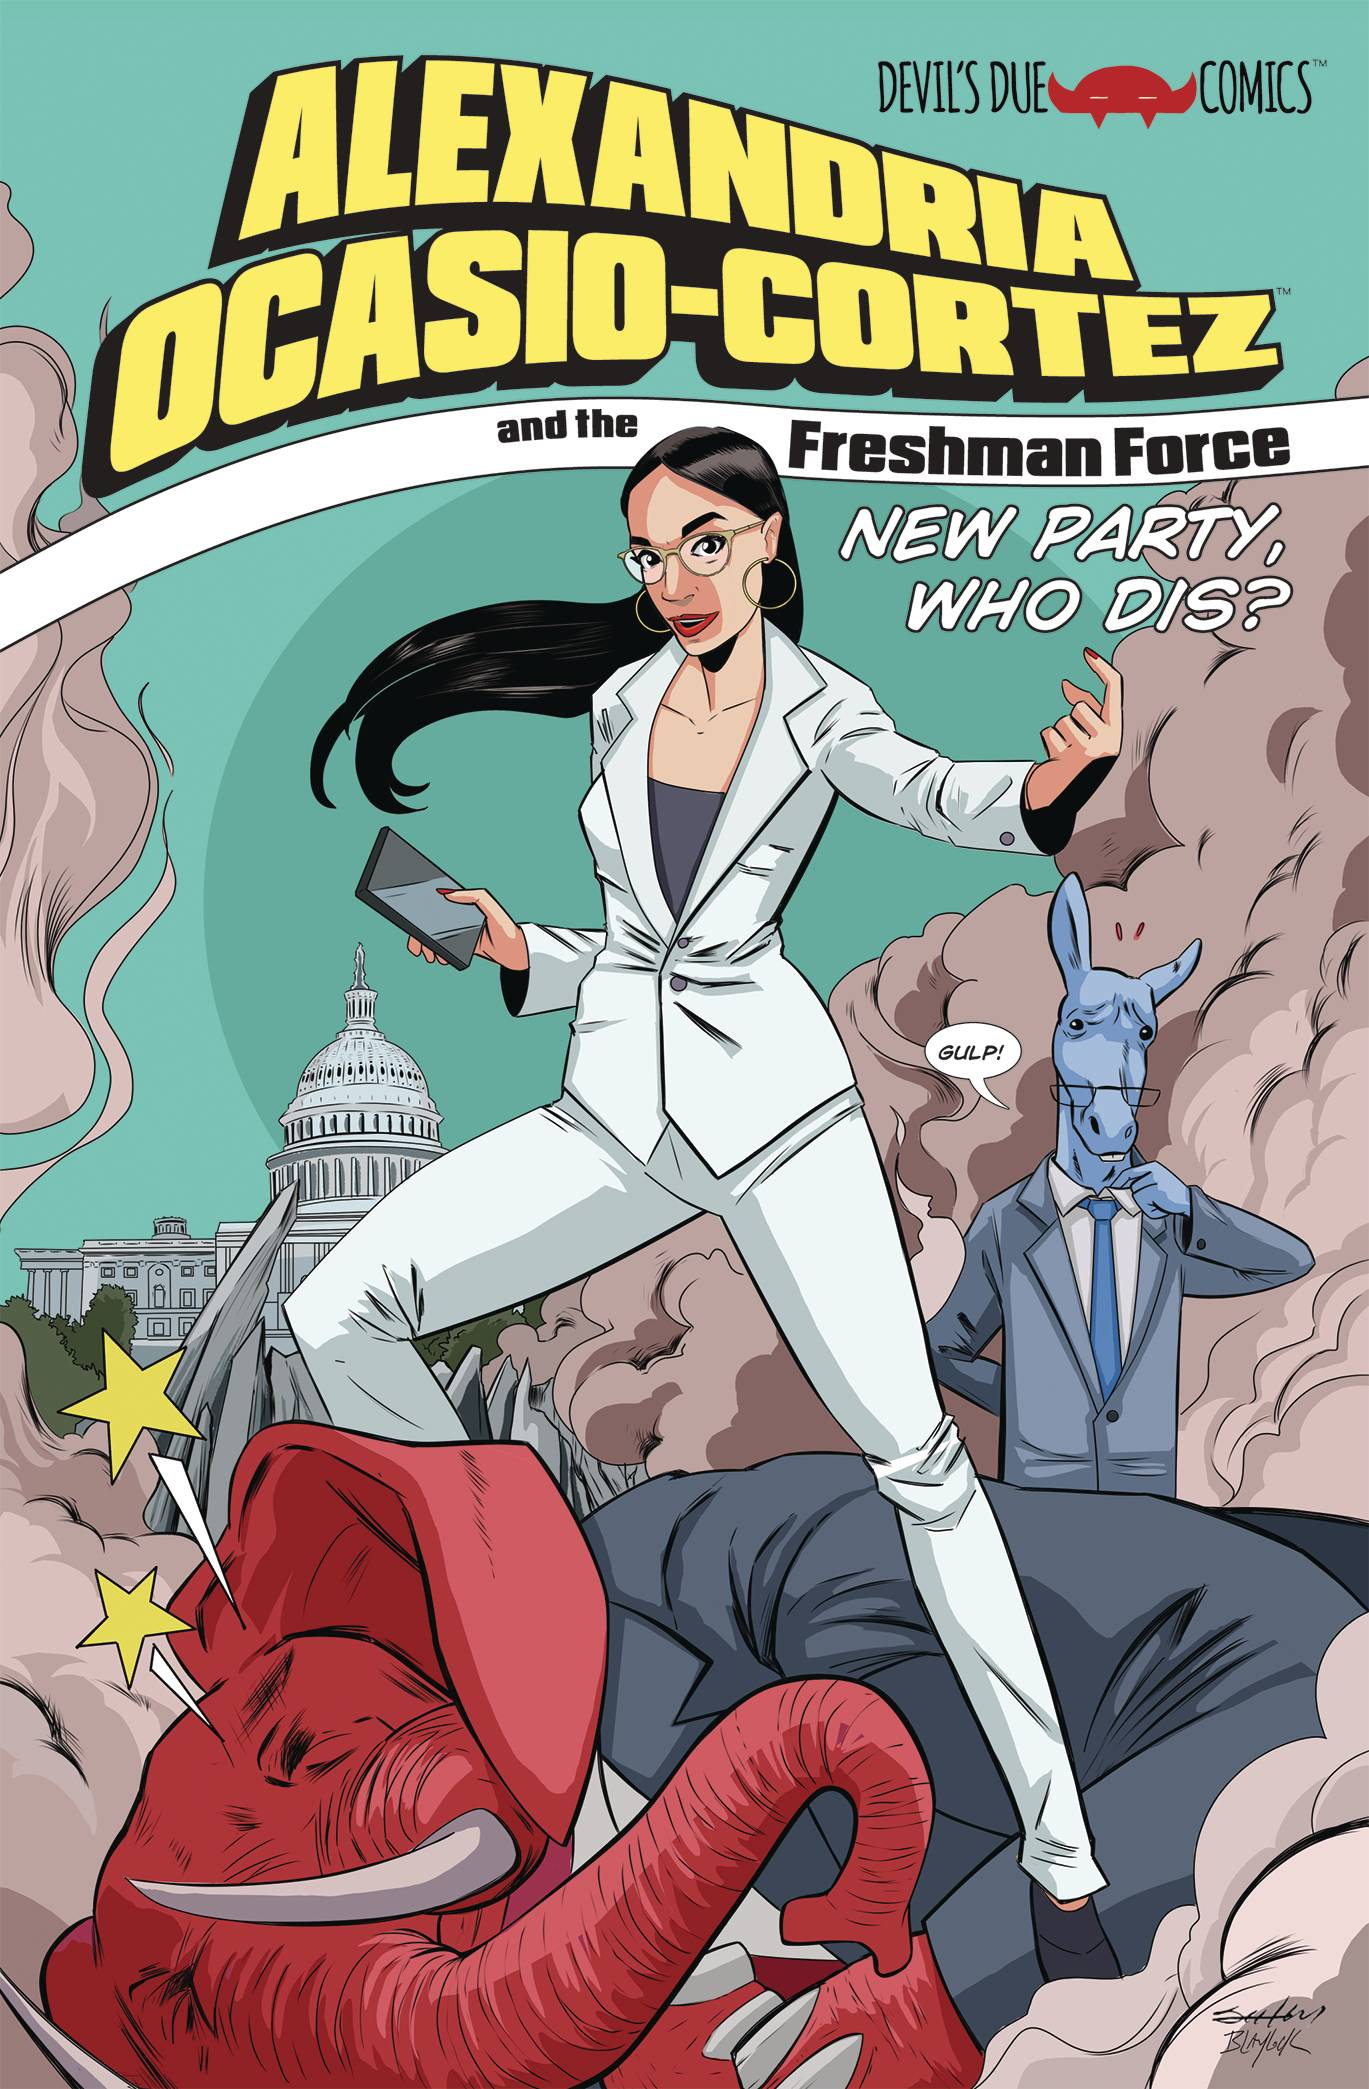 ALEXANDRIA OCASIO CORTEZ & FRESHMAN FORCE WHO DIS ONE SHOT